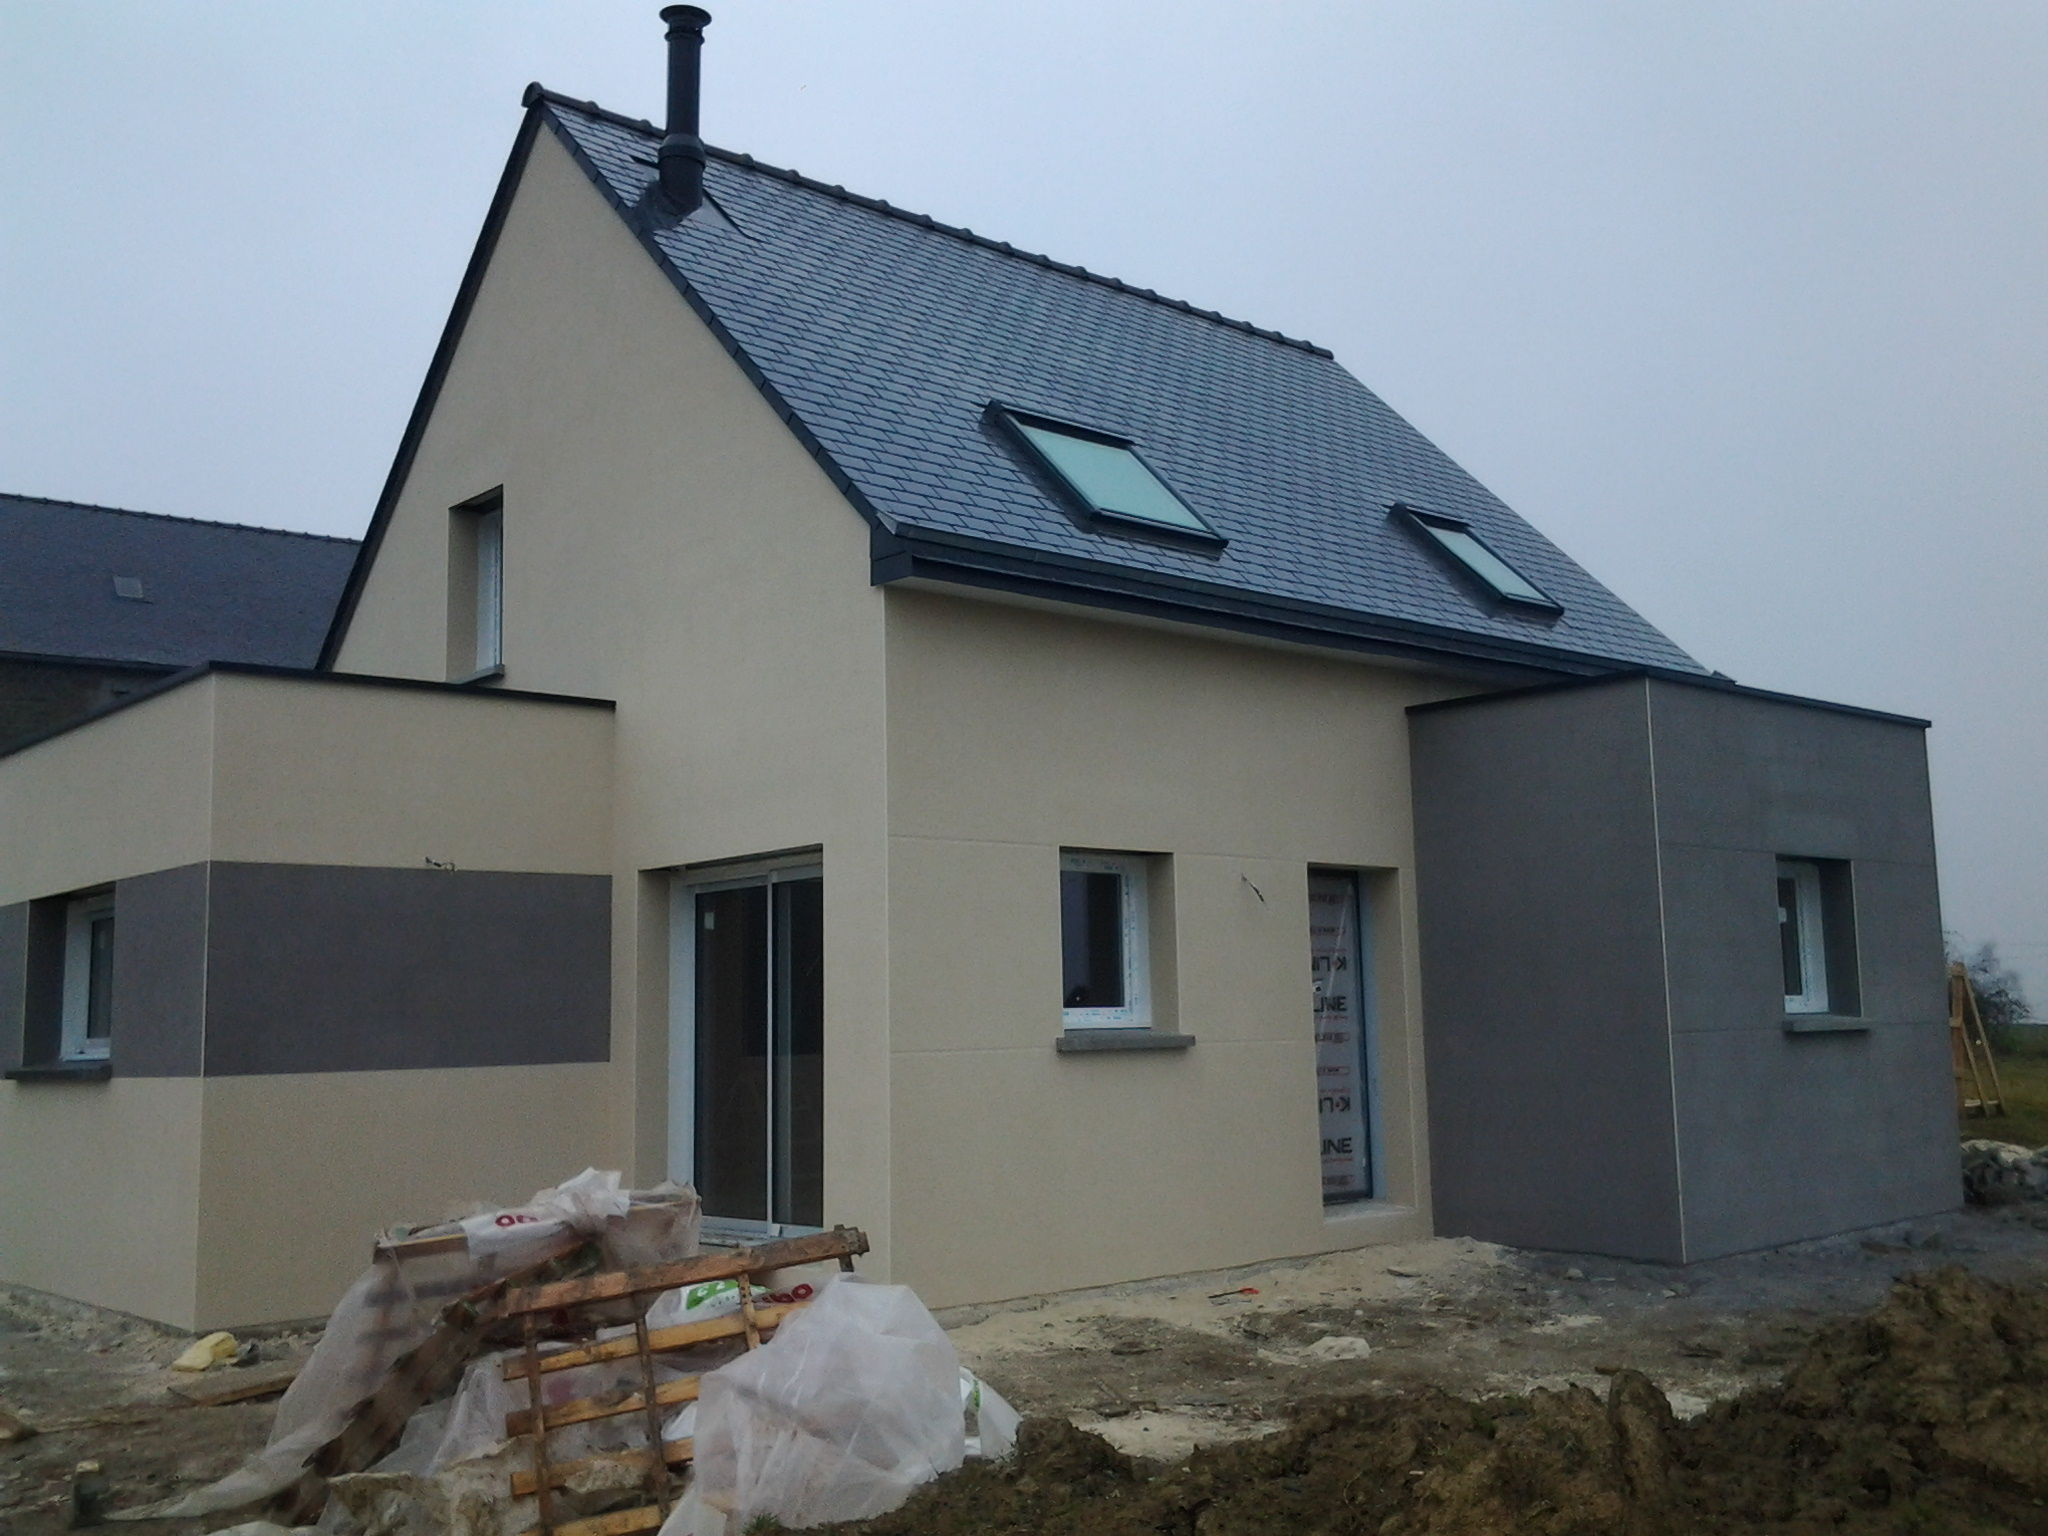 Enduit ext rieur fini construction d 39 une maison d for Crepis exterieur